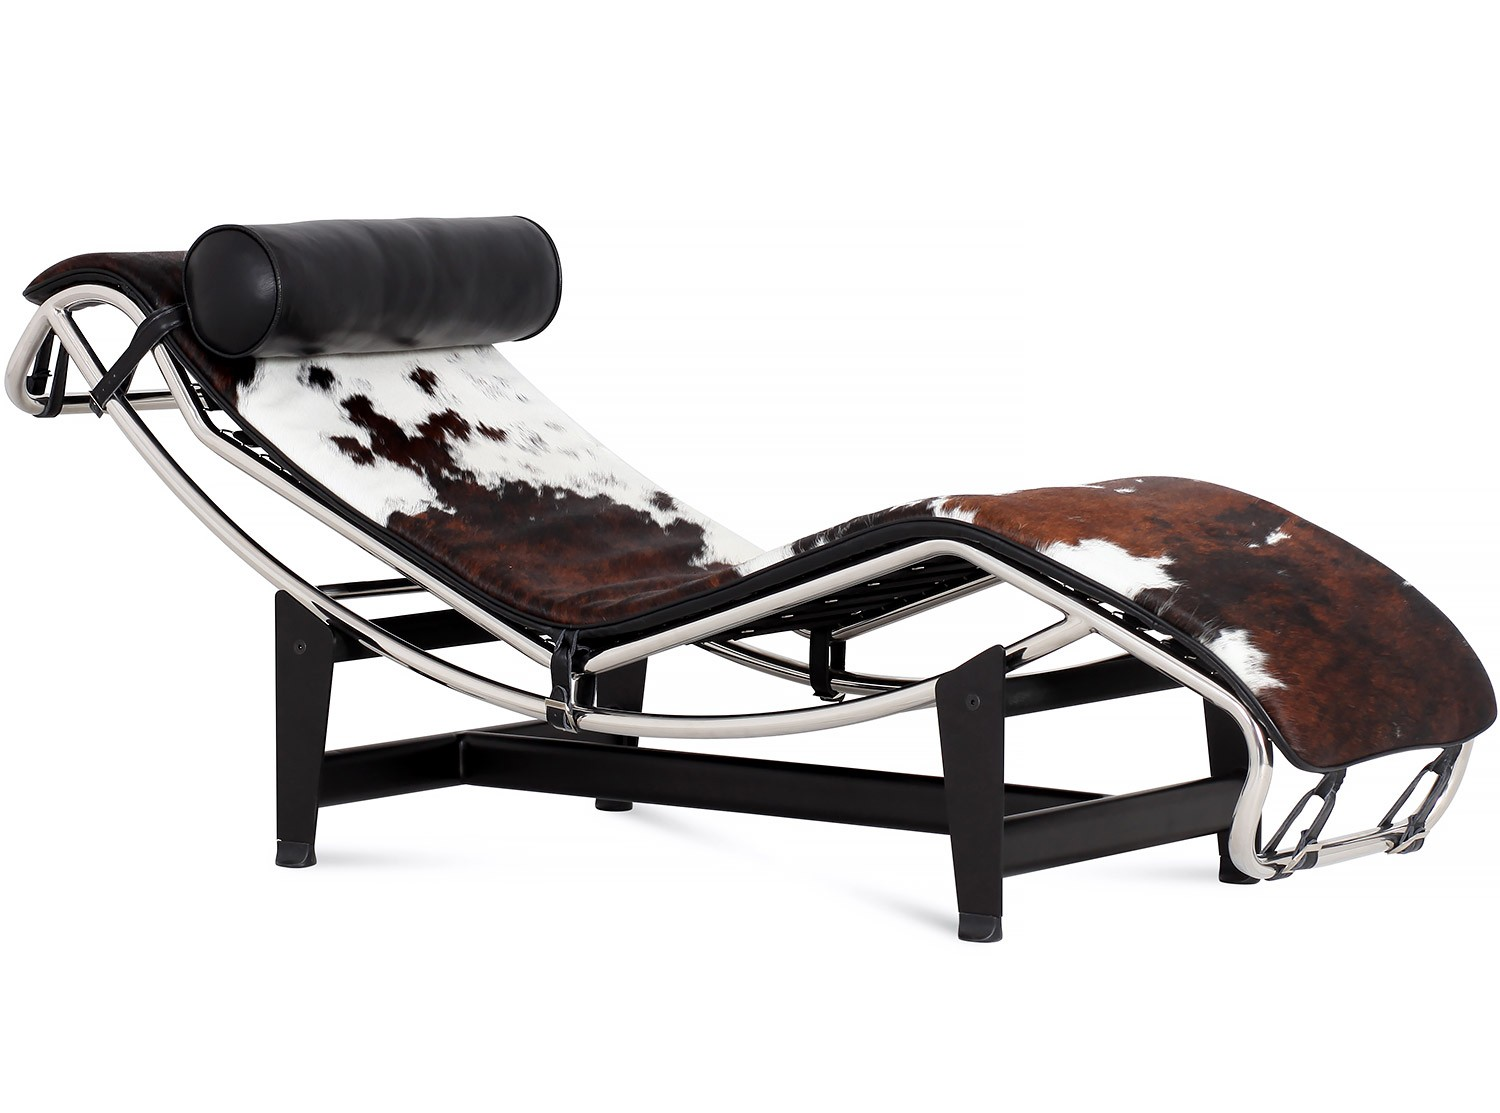 Le corbusier lc4 chaise longue cowhide platinum replica for Chaise longue carrefour